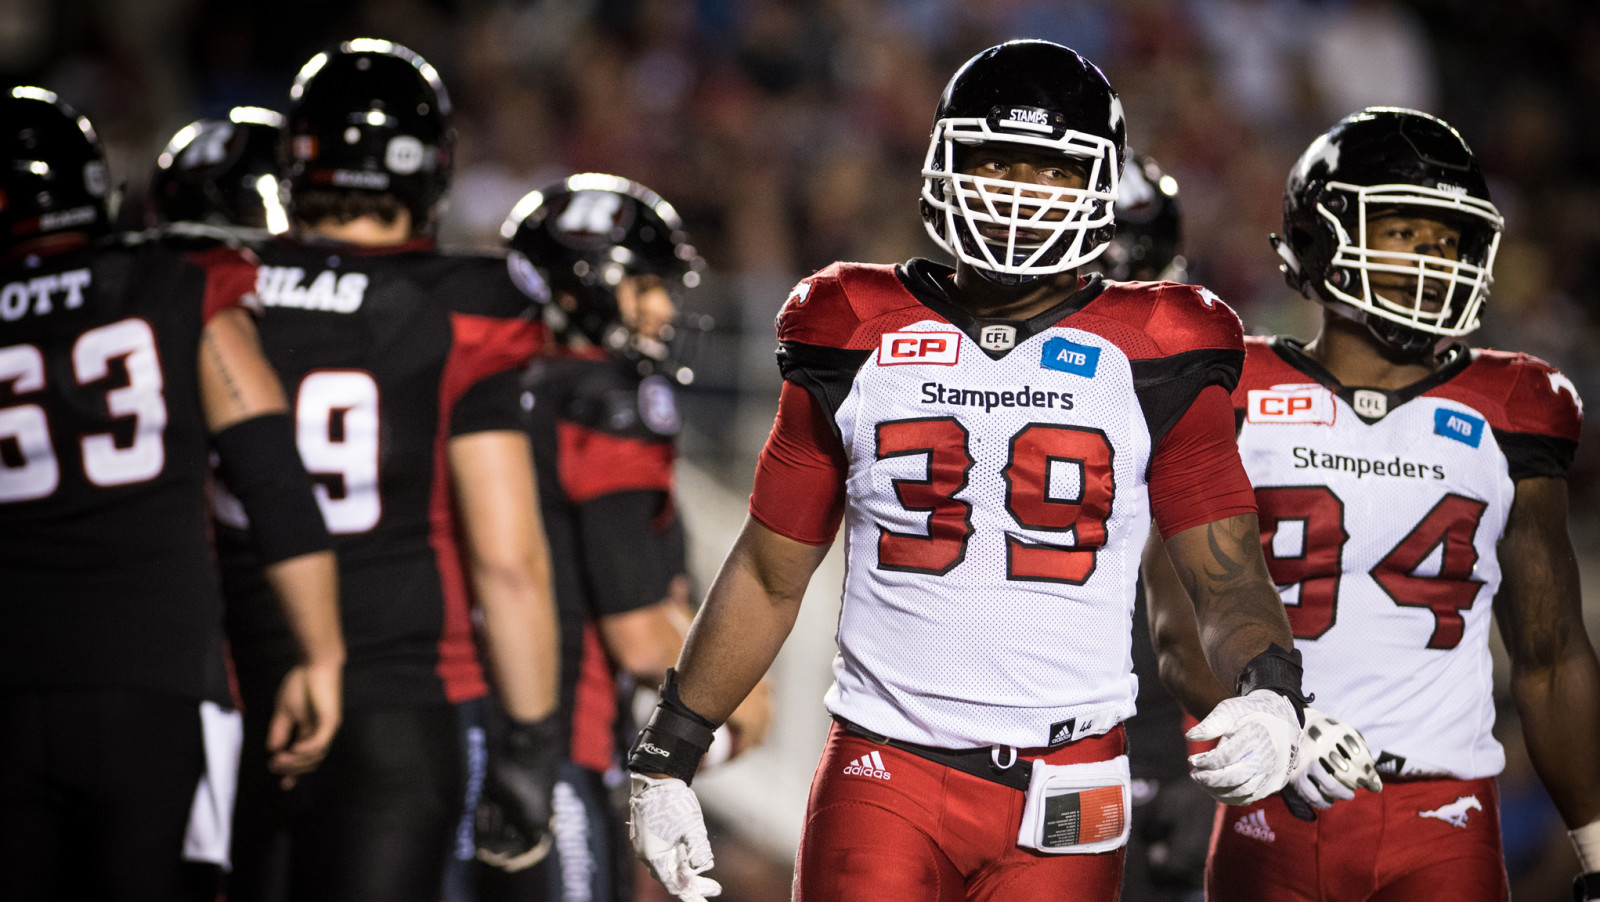 Ticats acquire defensive lineman Hughes in trade, flip him to Roughriders